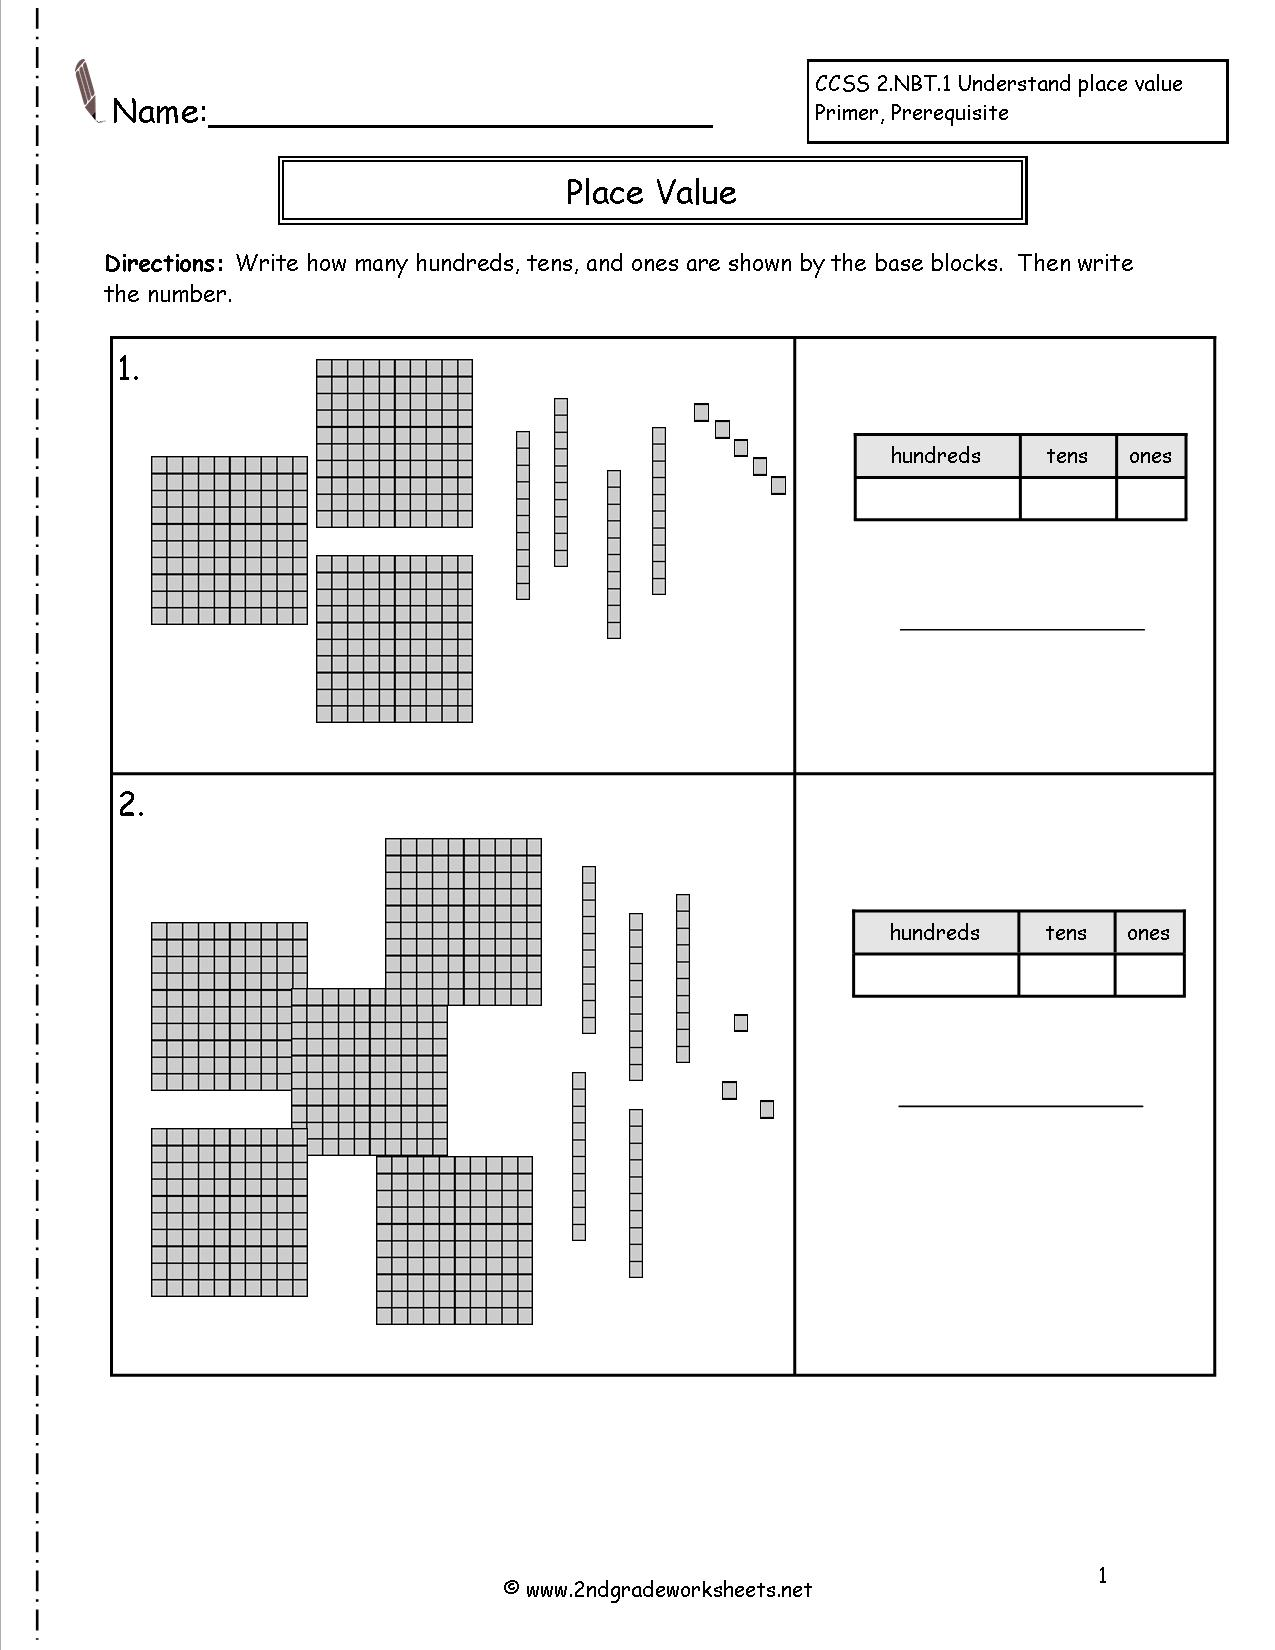 Place Value Worksheet Drawing